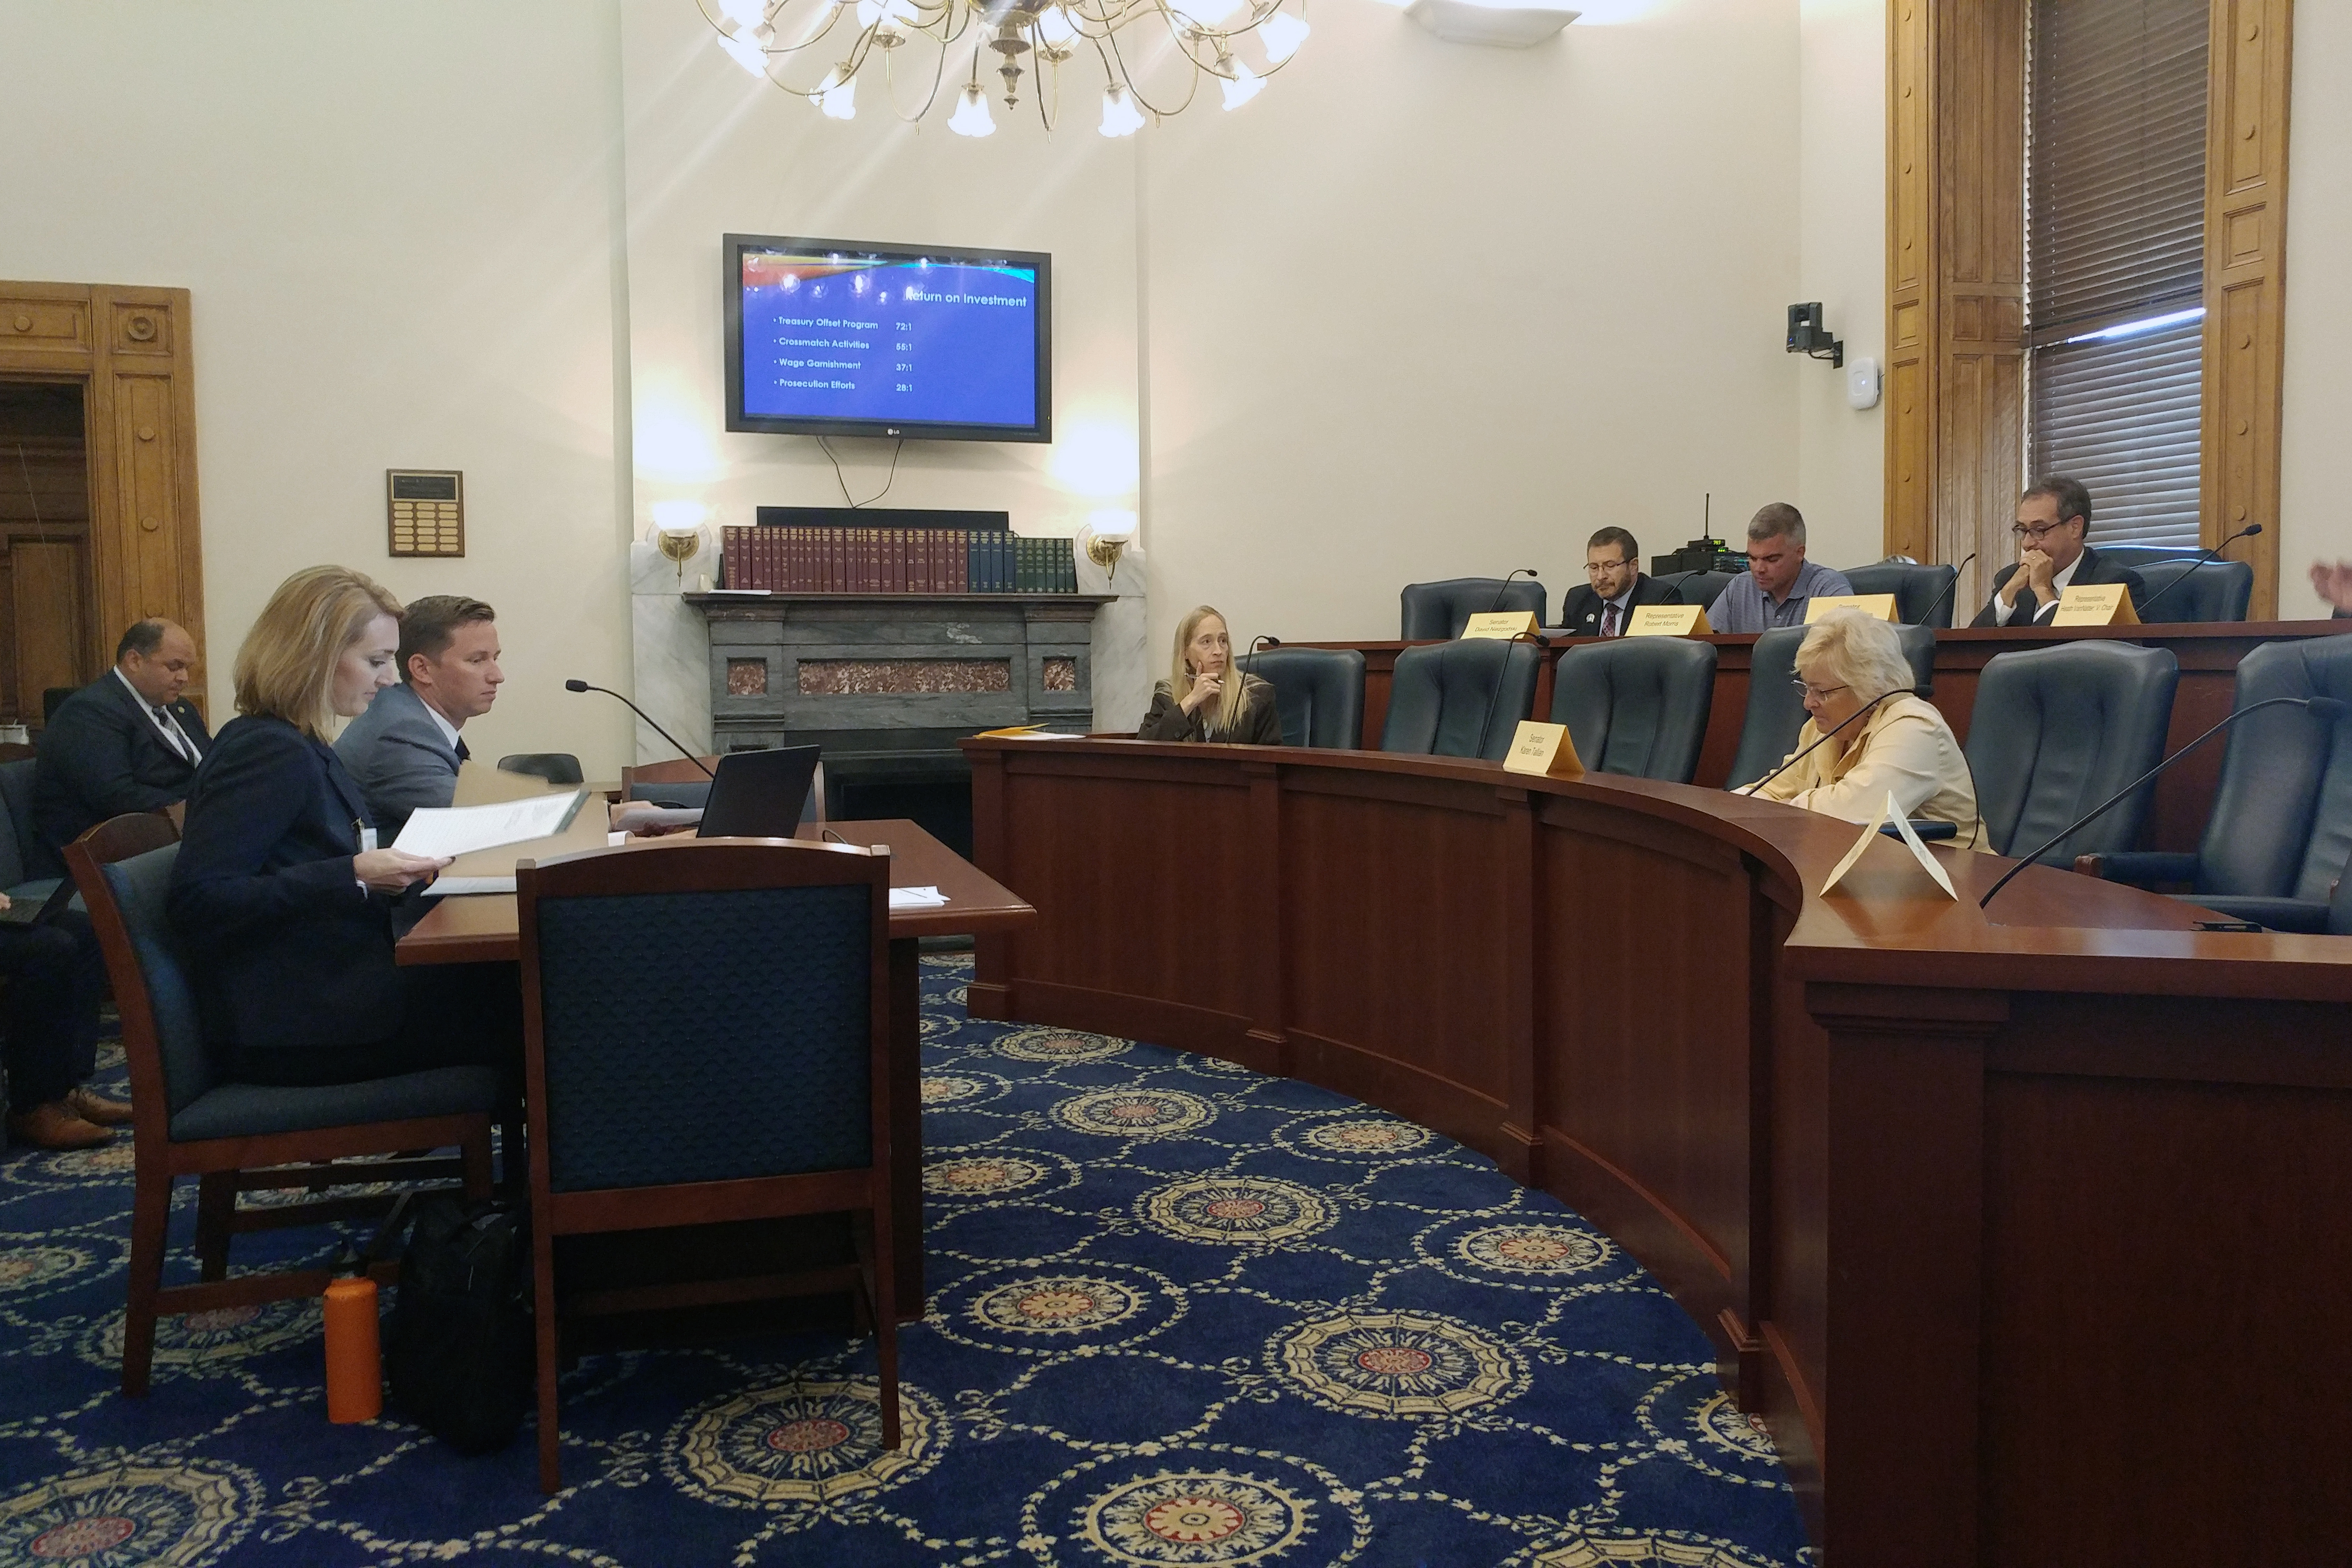 Lawmakers weren't happy at what they felt was missing Tuesday from an update on Indiana's unemployment insurance program.